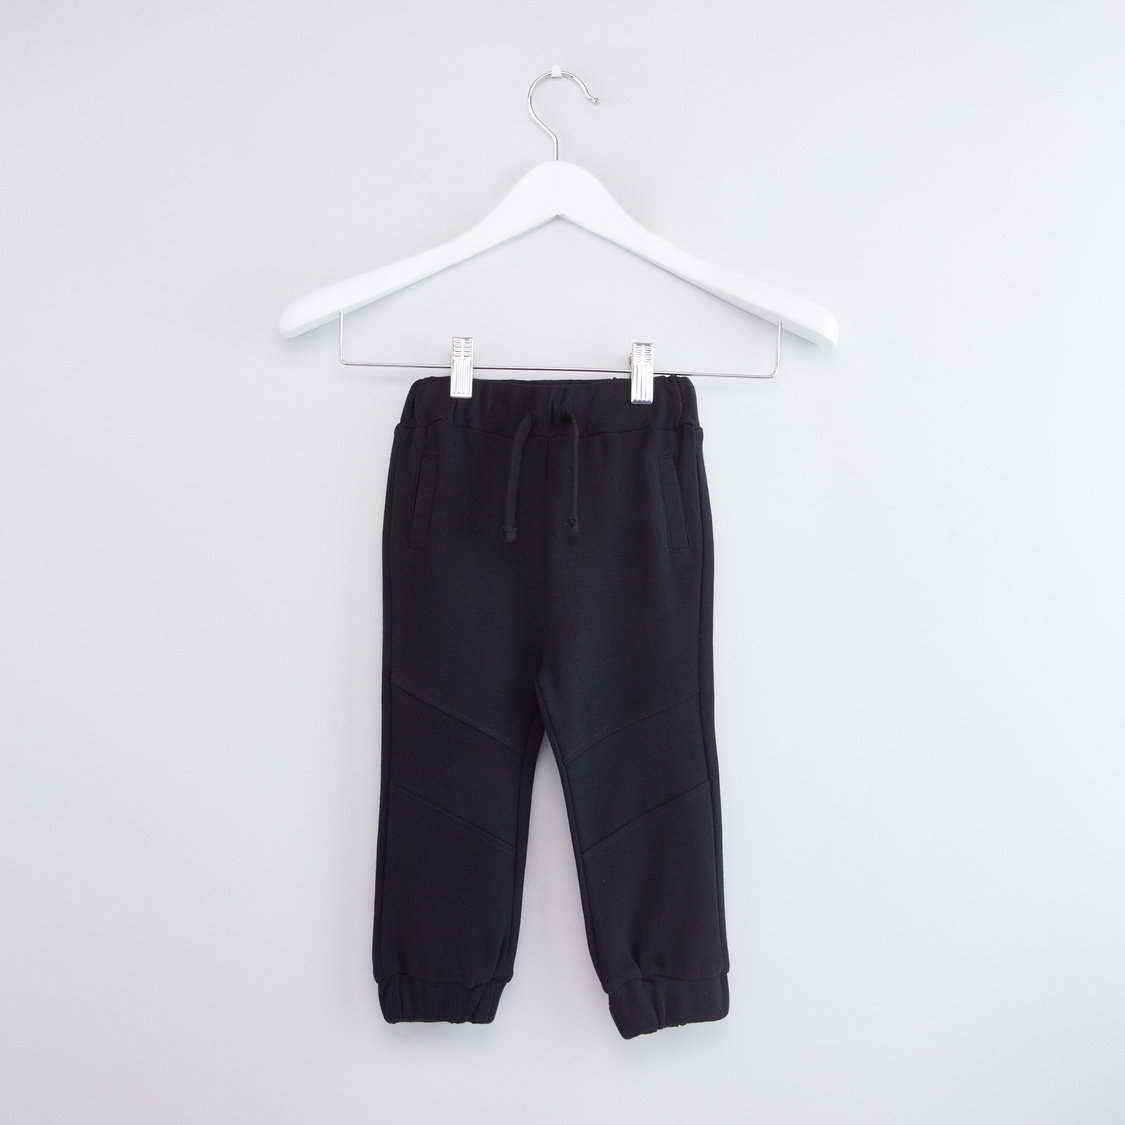 Solid Jogger Pants with Drawstring Closure and Stitch Detail